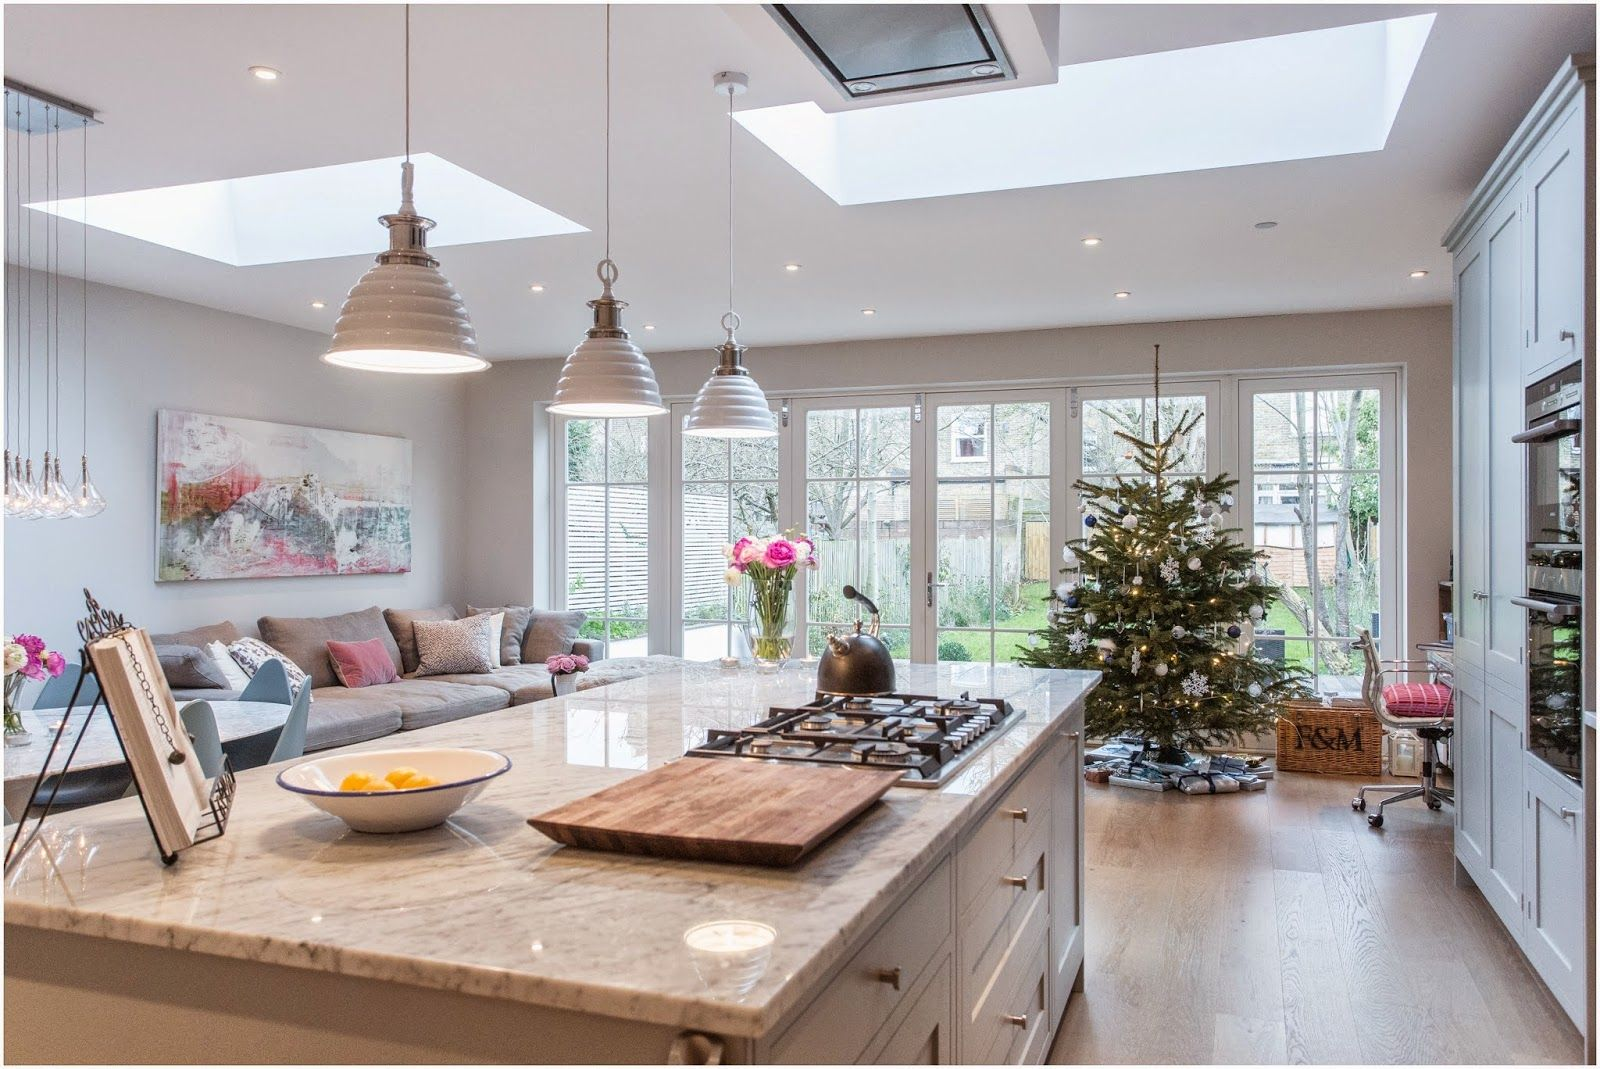 Pin by Ash Mcp on new house   Open plan kitchen living room ...